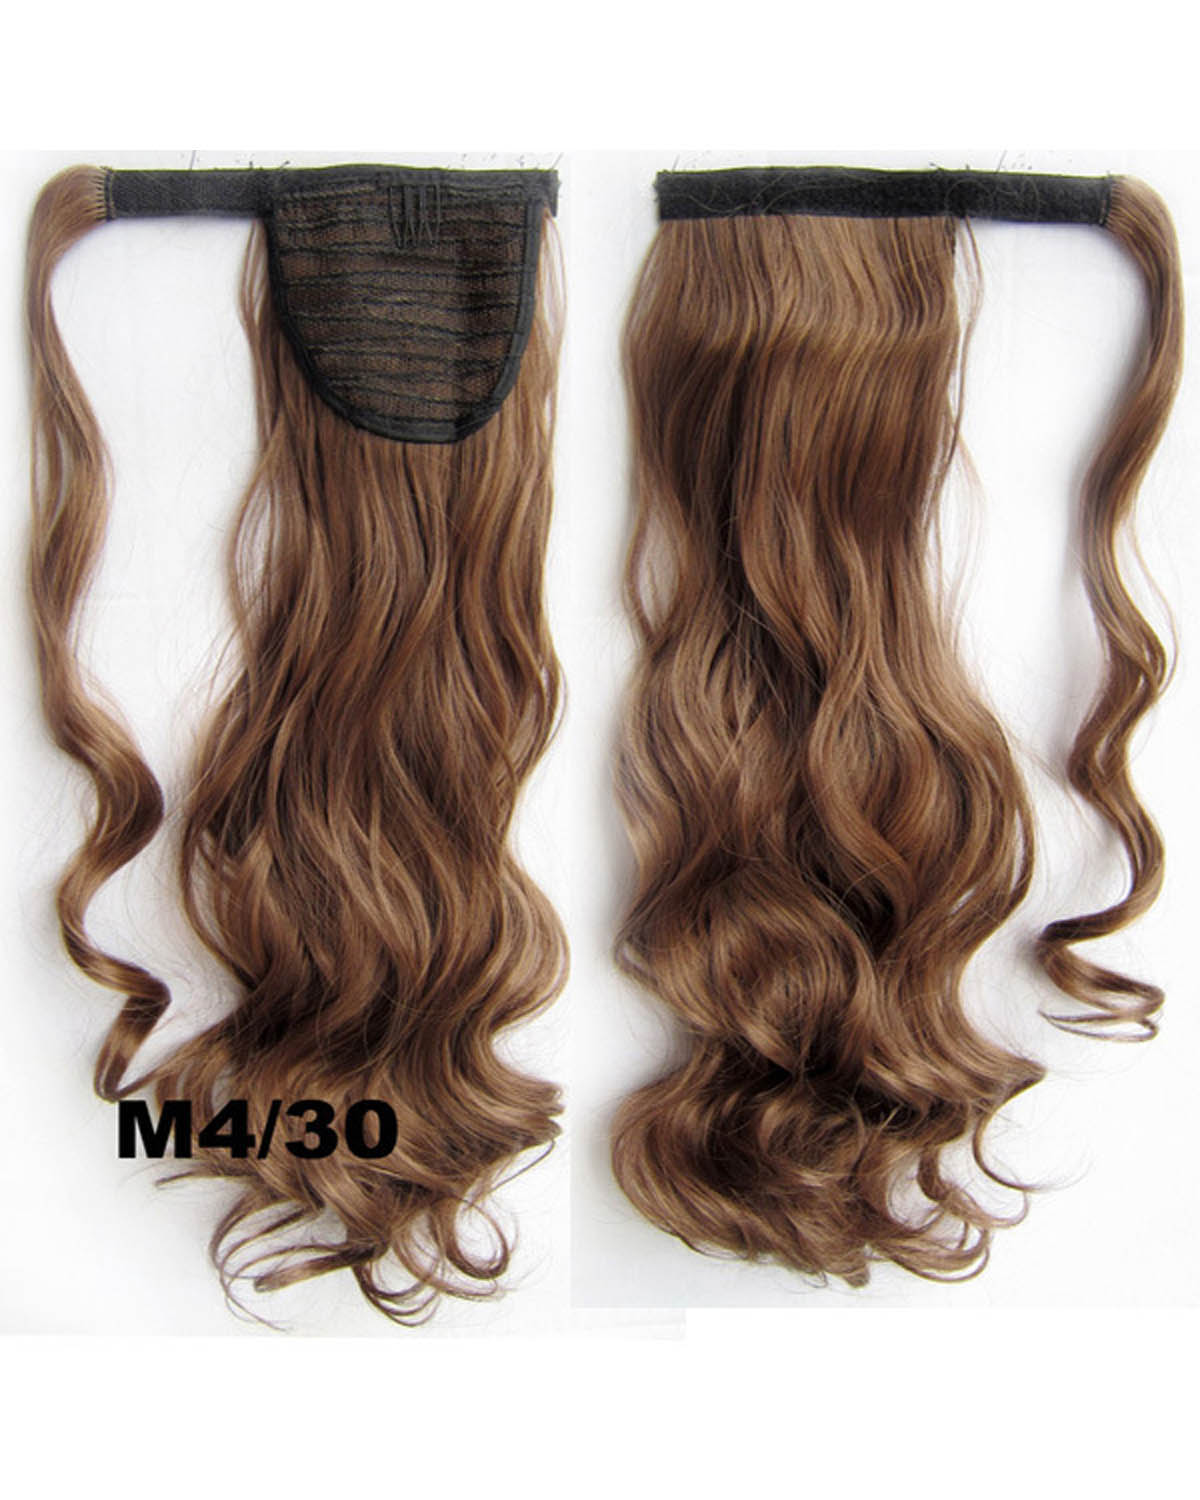 22 Inch Lady Bright Curly and Long Wrap Around Synthetic Hair Ponytail M4/30